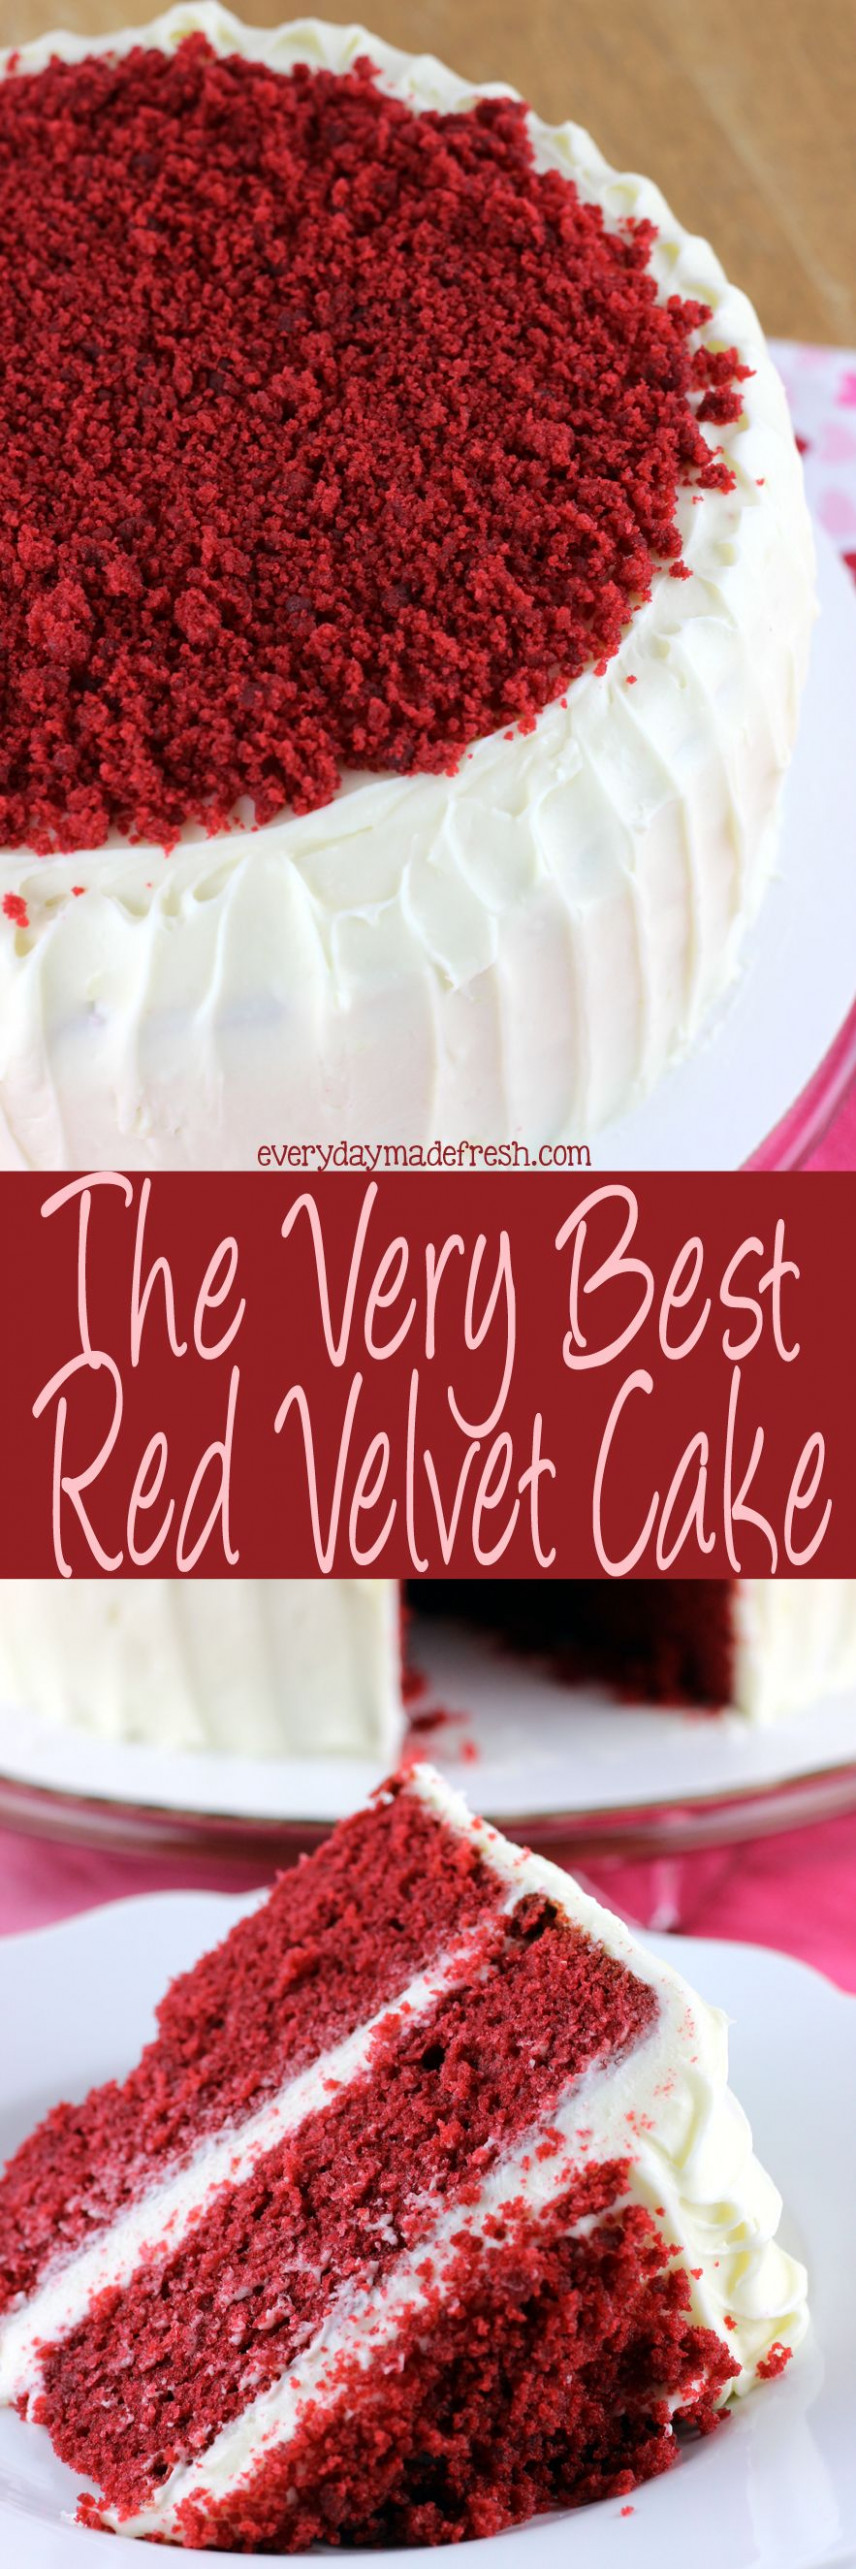 The Very Best Red Velvet Cake | Recipe | A Moment on the ...